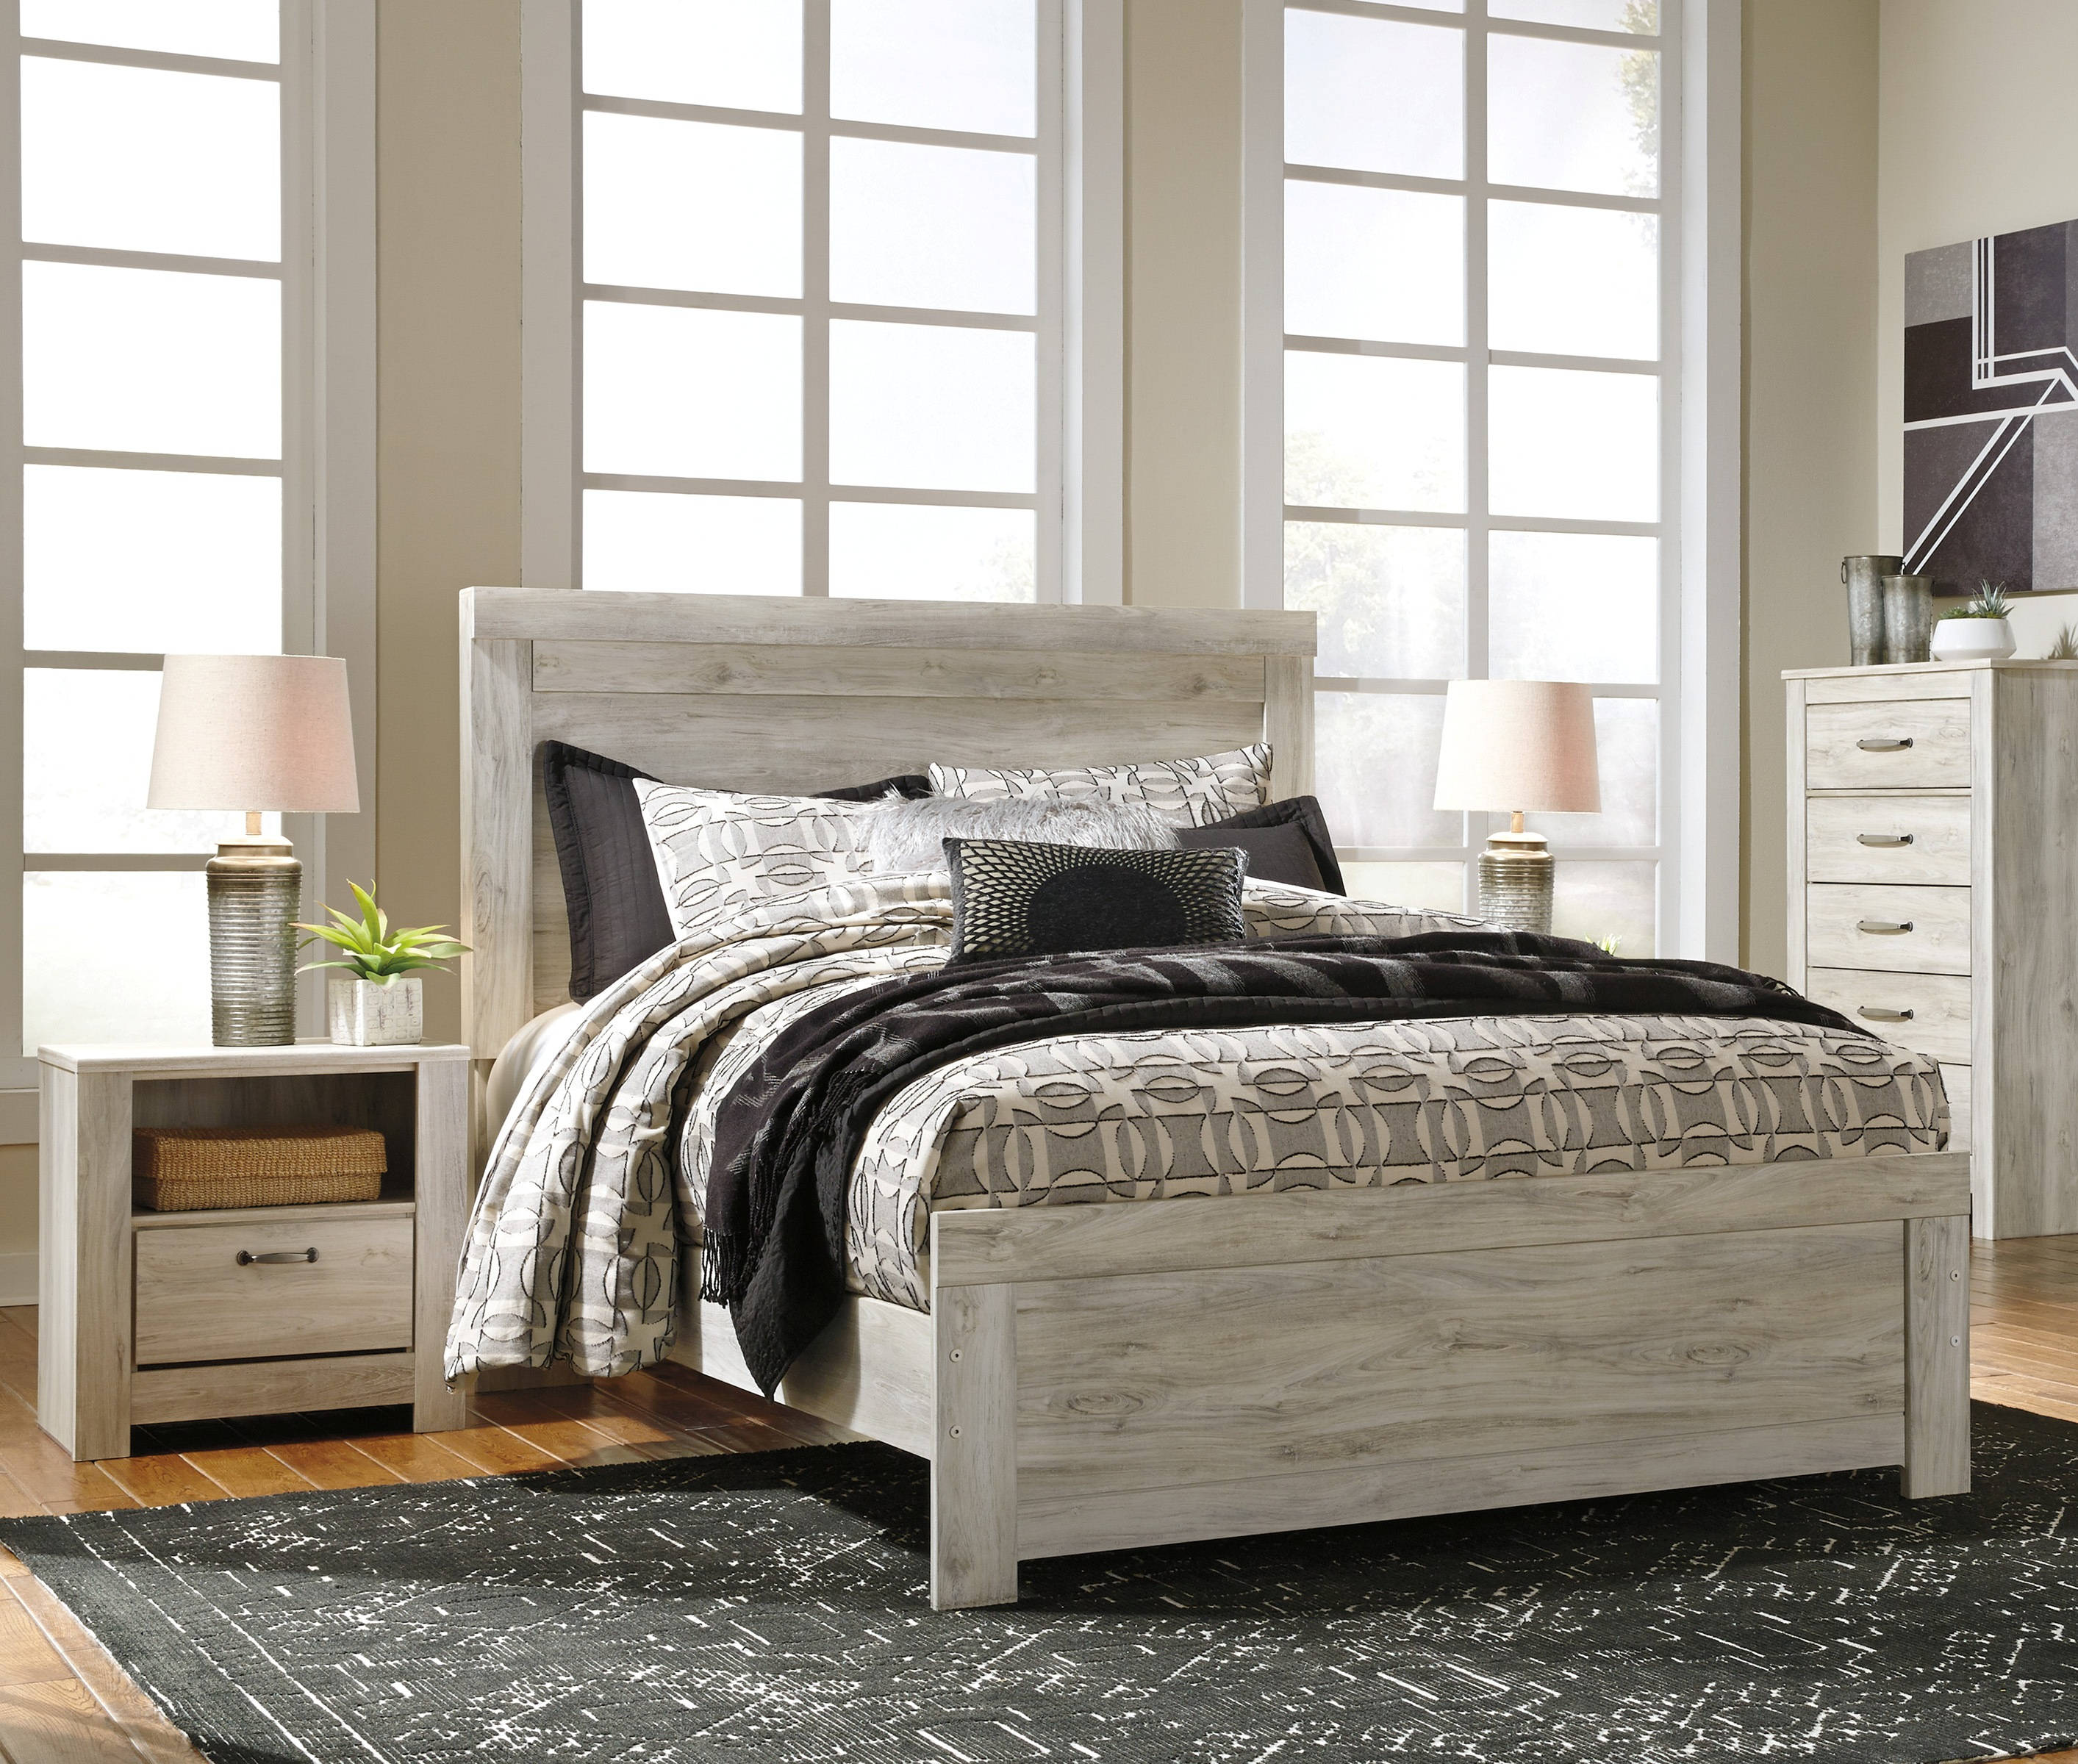 Ashley Home Furniture Bedroom Sets: Ashley Furniture Bellaby 2pc Bedroom Set With Queen Bed